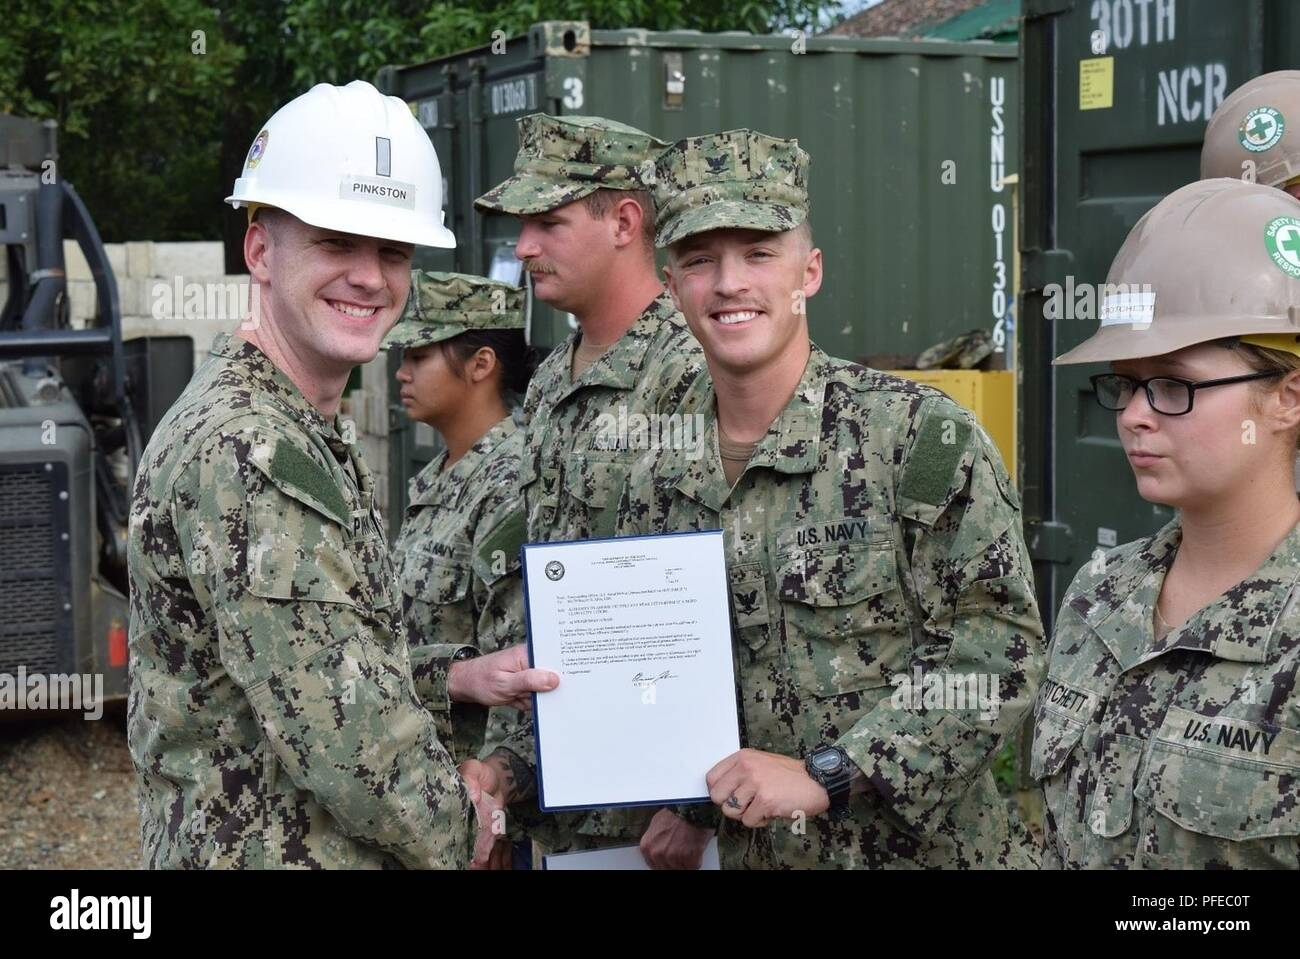 PALAWAN, Philippines (June 7, 2018) Newly frocked Builder 3rd Class Braden Allen poses with Lt.j.g. Michael Pinkston, both assigned to Naval Mobile Construction Battalion (NMCB) 5, during awards and quarters. NMCB 5 is forward deployed to execute construction, humanitarian and foreign assistance, and theater security cooperation in support of United States Pacific Command. Stock Photo